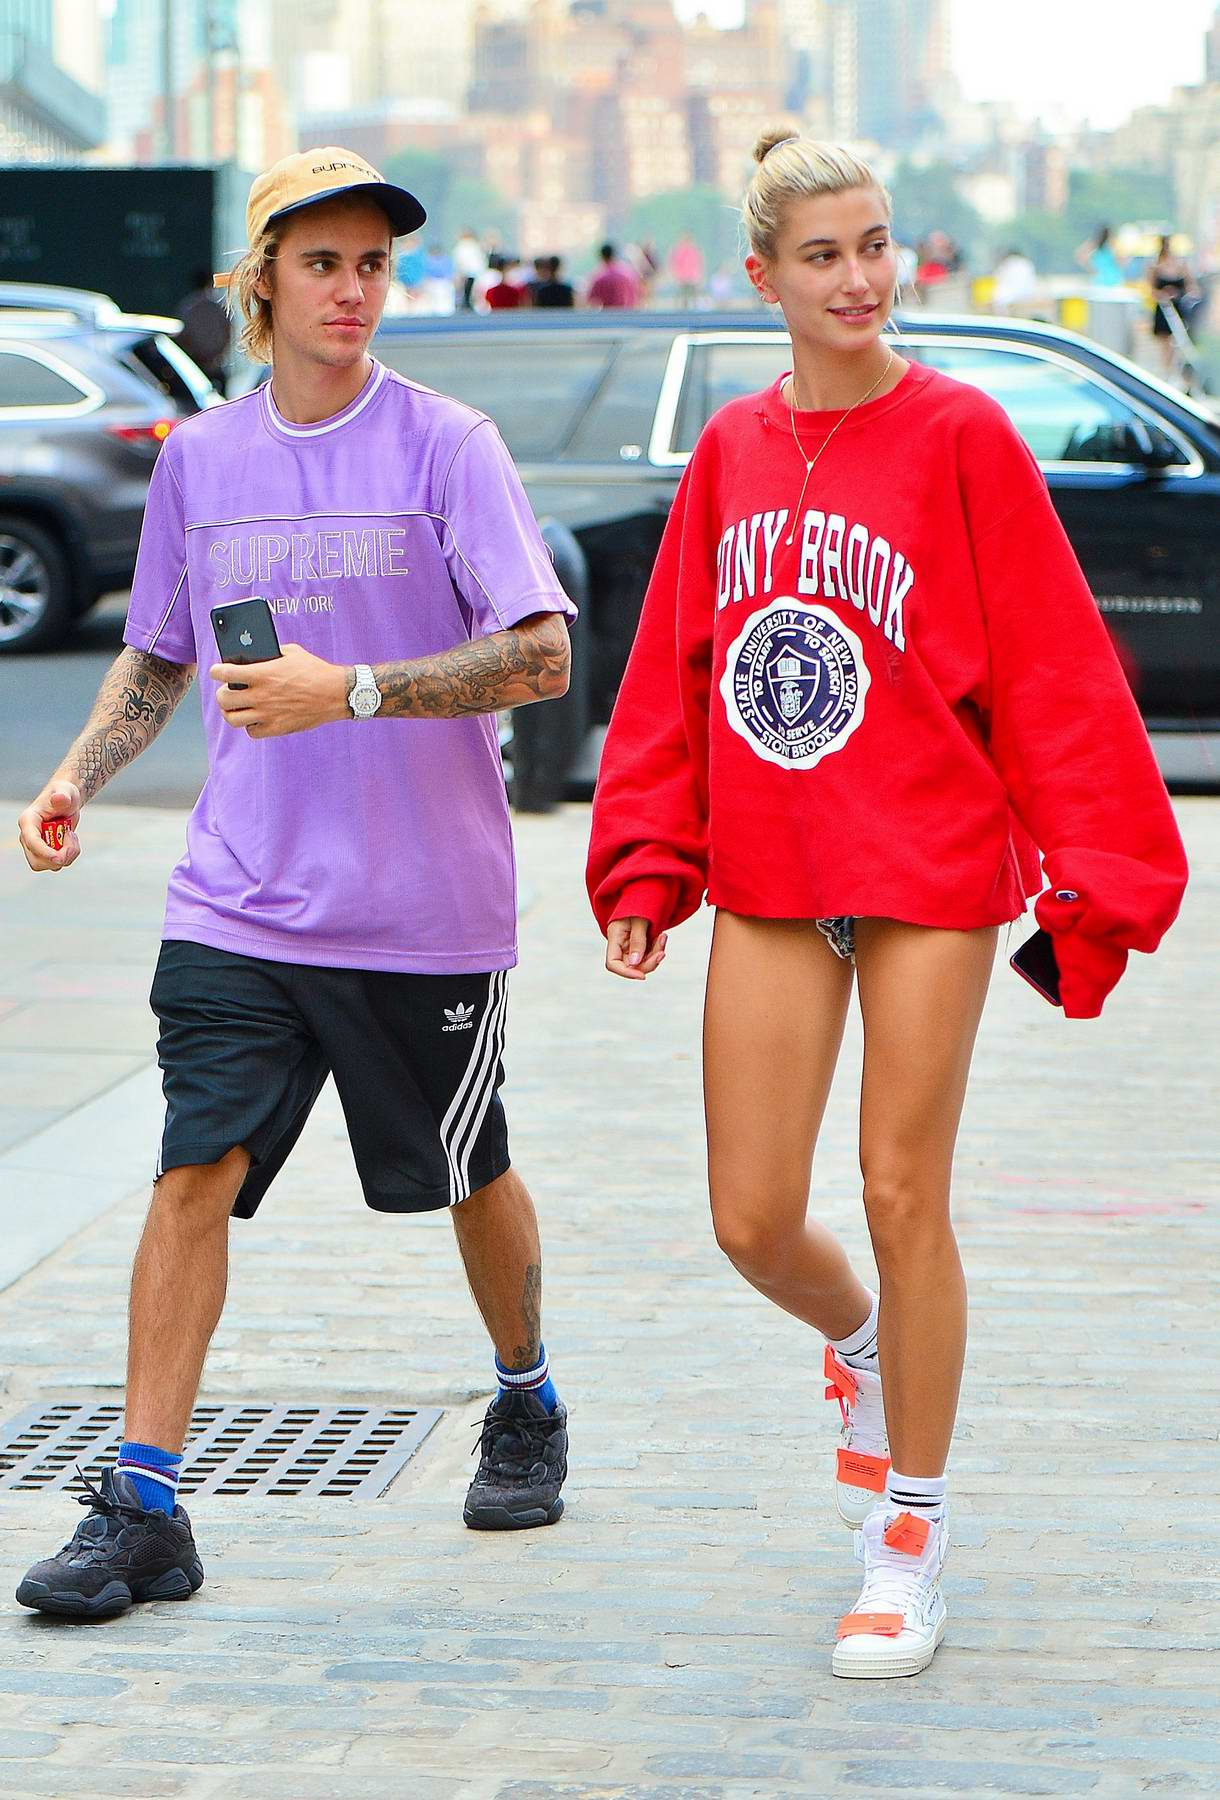 Hailey Baldwin and Justin Bieber are all smiles as they walk around South Street Seaport before heading over to catch a movie in New York City